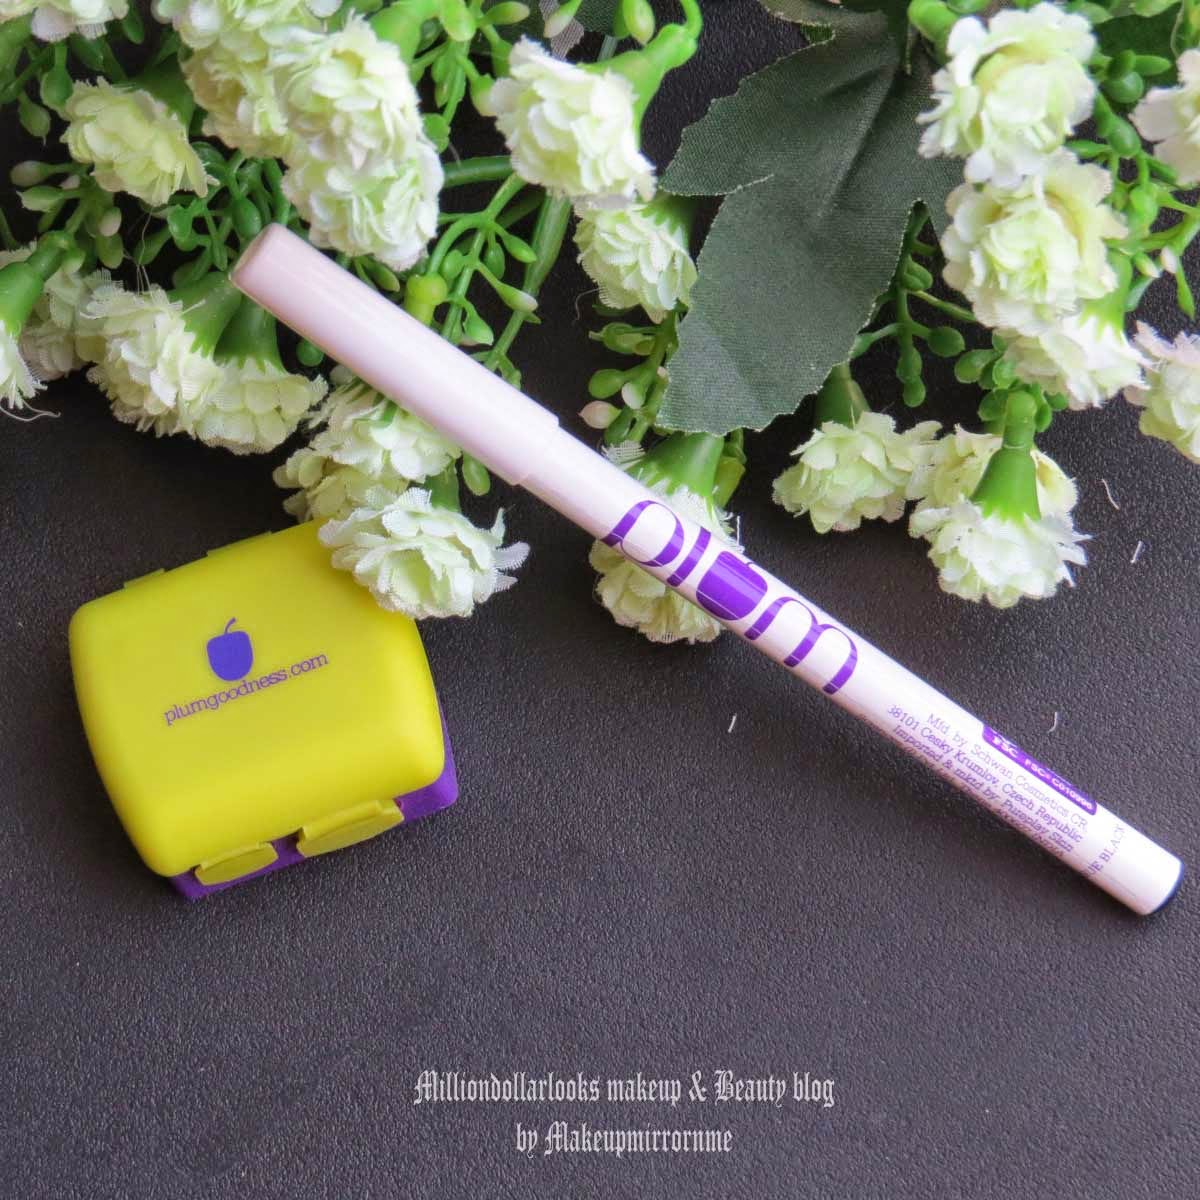 Plum Angel Eyes Kohl Kajal Review, Swatch & Pictures, Kajak review, Herbal kajak, herbal kohl, Indian makeup and beauty blog, Indian makeup blogger, Indian makeup blog, Indian beauty blogger, Kajal review, Kajal for sensitive eyes, Angel eyes, Plum goodness kajal review, Plum goodness review, SLS free skin care brands in India, Paraben free skincare brand in India, Milliondollarlooks makeup and beauty blog, Intense black kajal, Indian kohl rimmed eye makeup